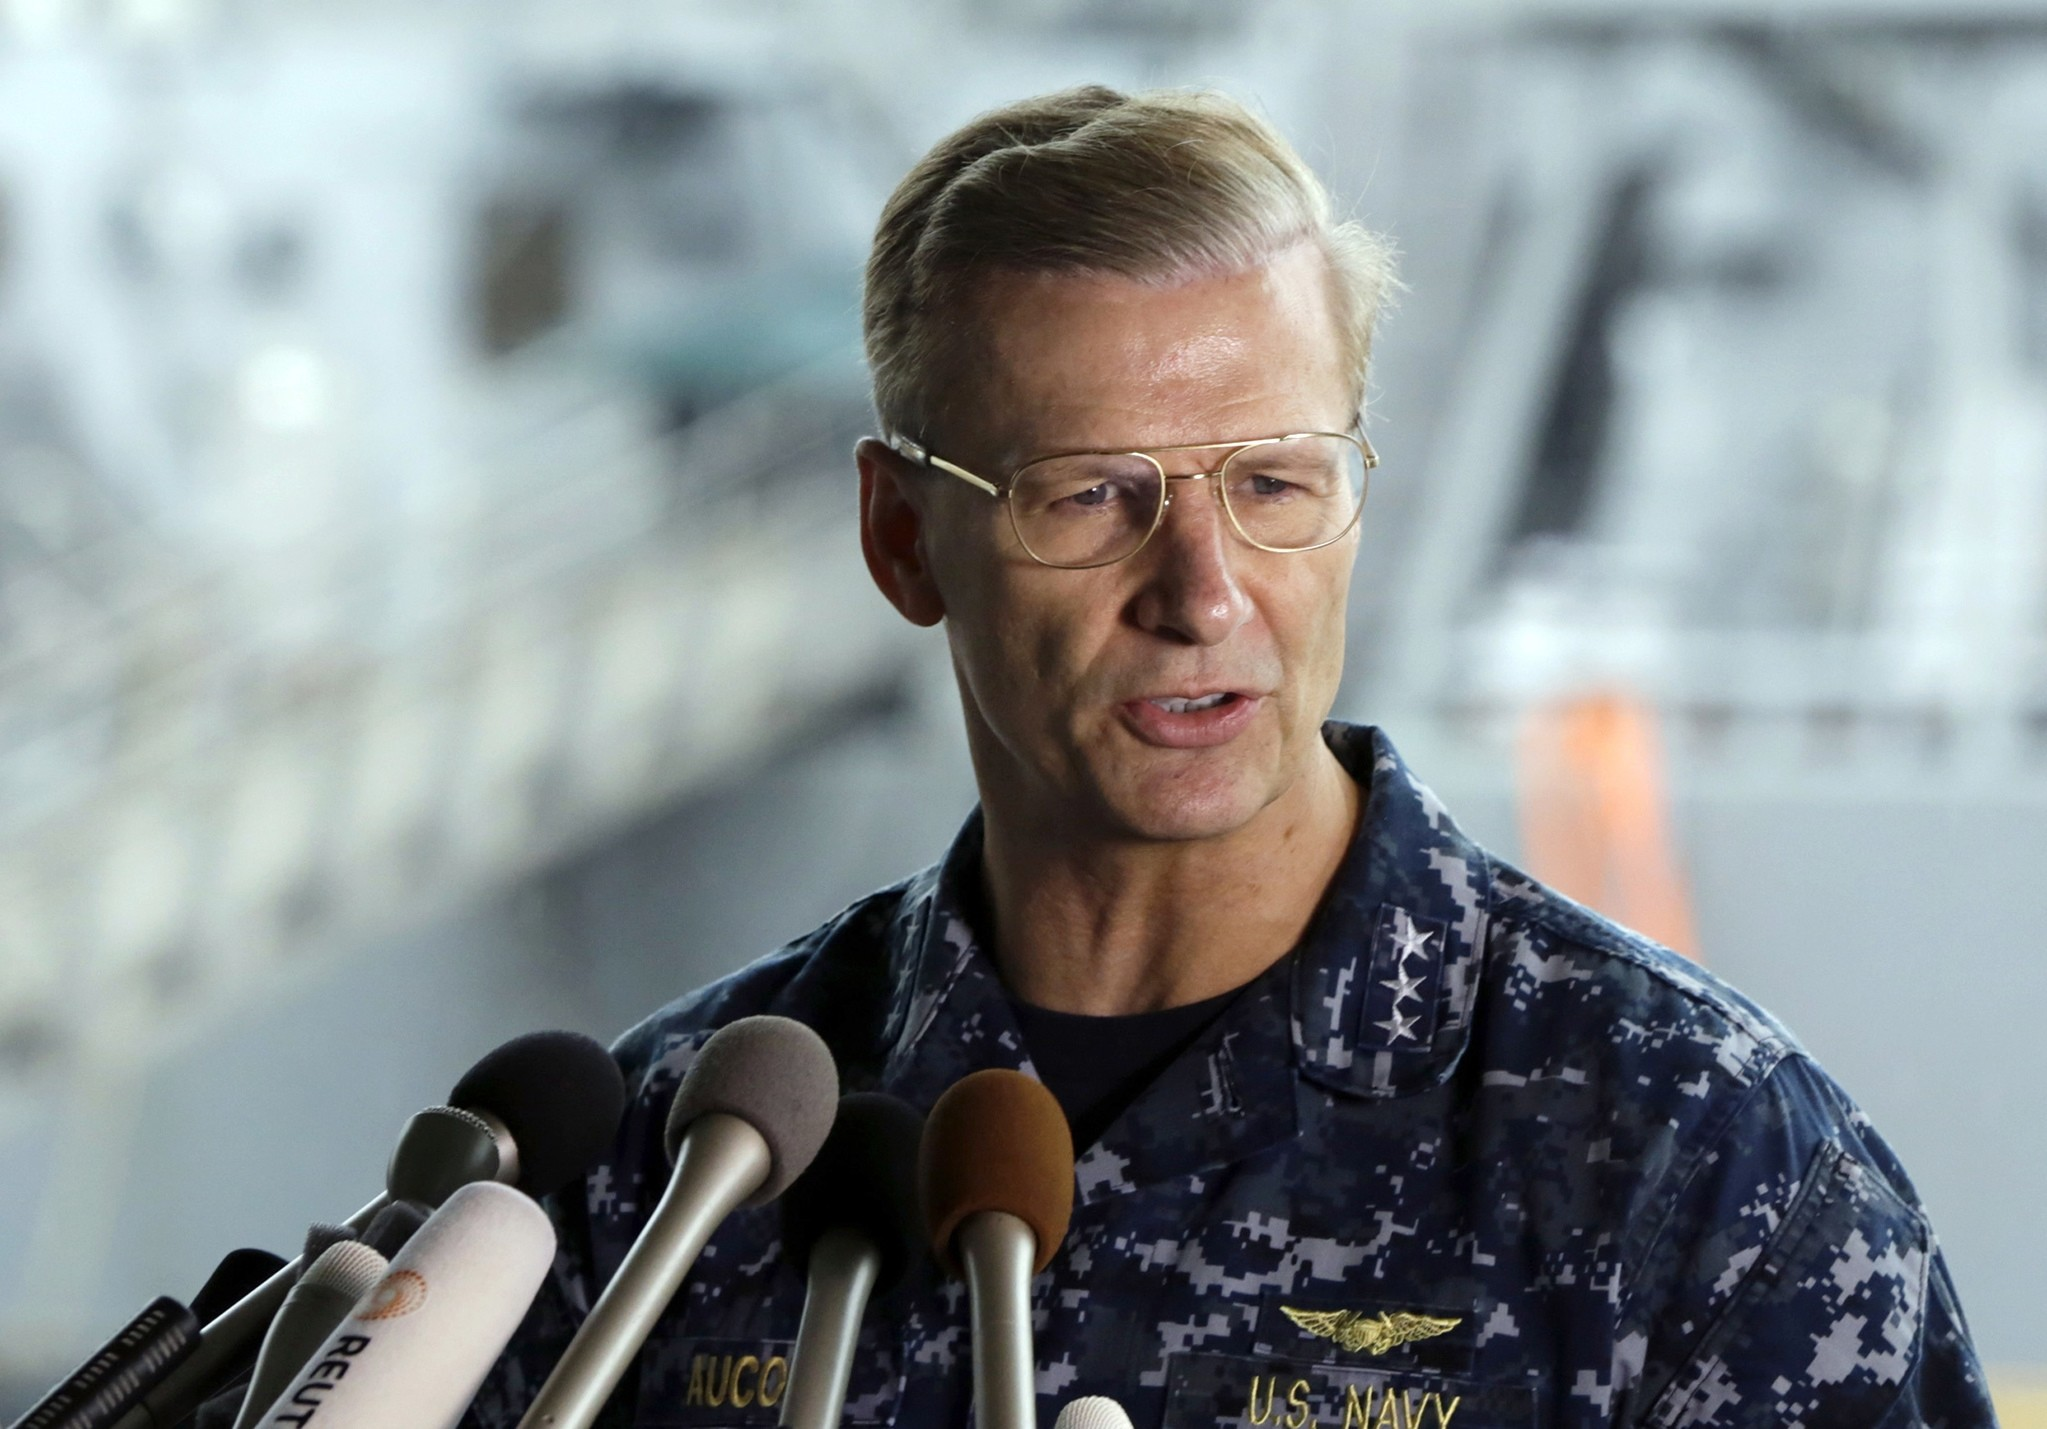 In this June 18, 2017, file photo, U.S. Navy Vice Adm. Joseph Aucoin, Commander of the U.S. 7th Fleet, speaks during a press conference, with damaged USS Fitzgerald as background at the U.S. Naval base in Yokosuka. (AP Photo)